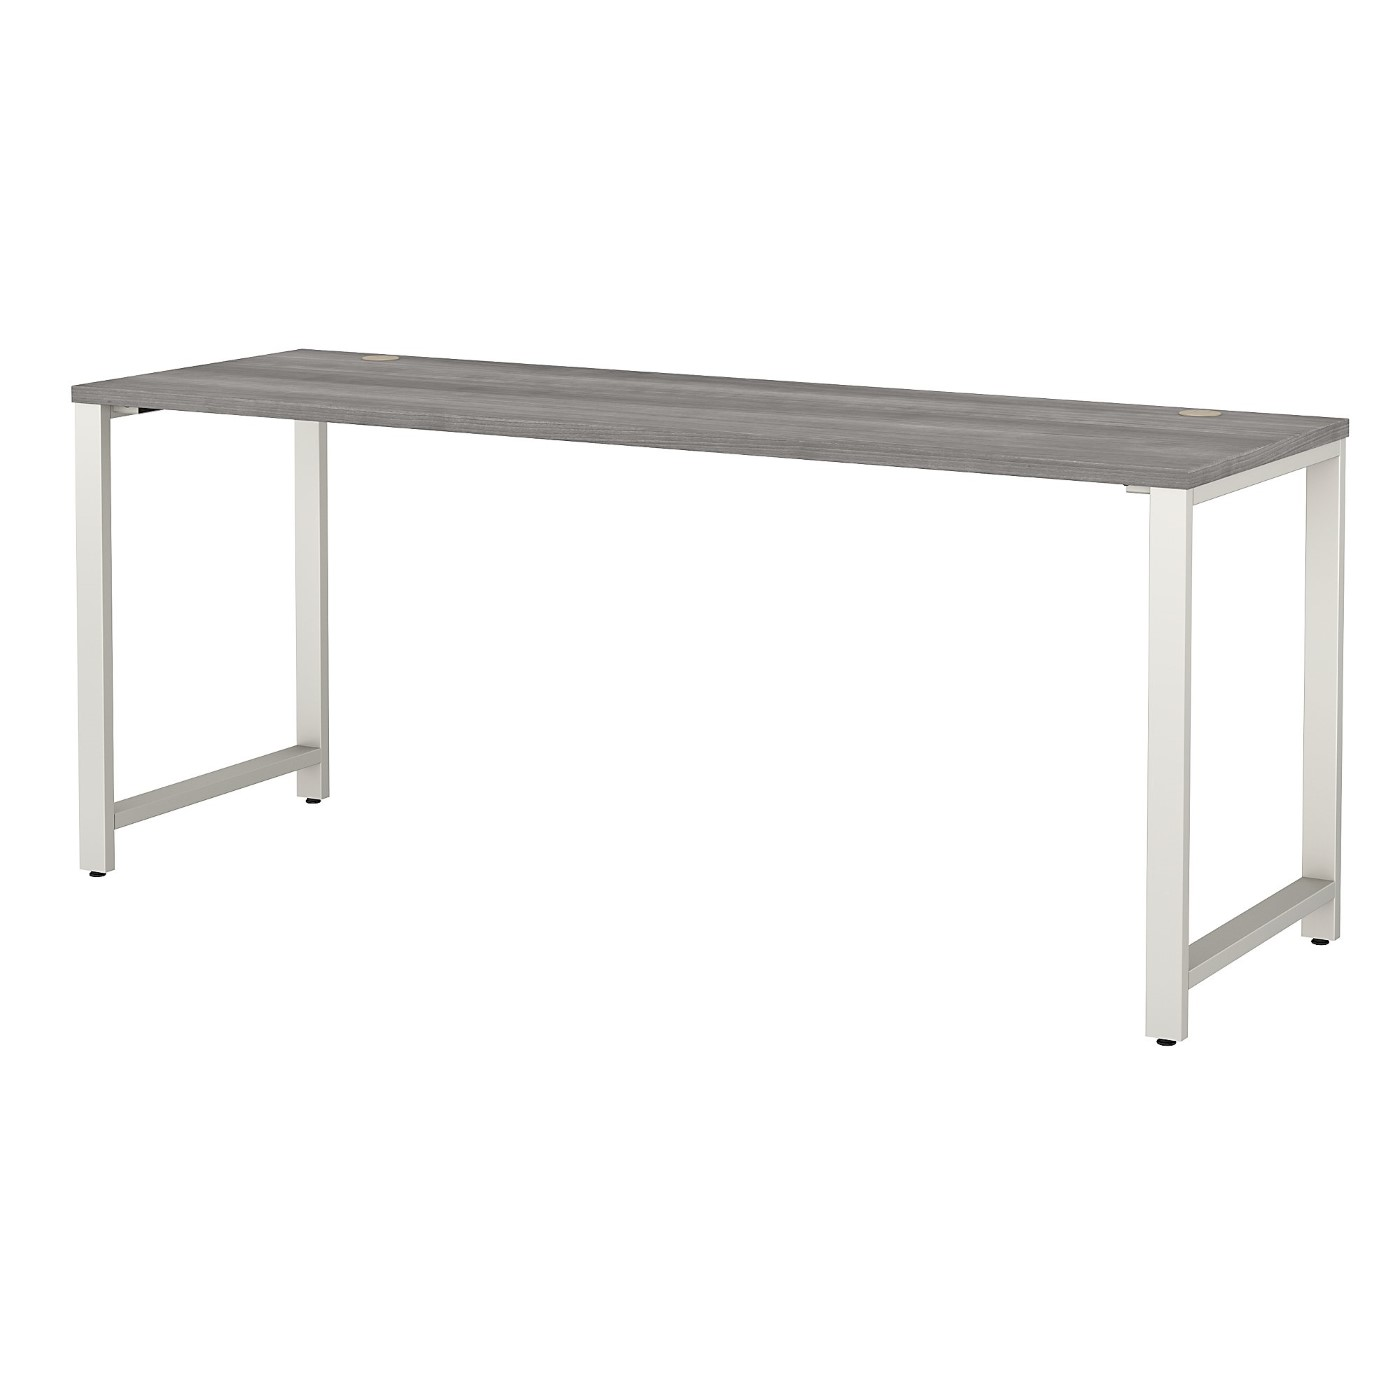 BUSH BUSINESS FURNITURE 400 SERIES 72W X 24D TABLE DESK WITH METAL LEGS. FREE SHIPPING